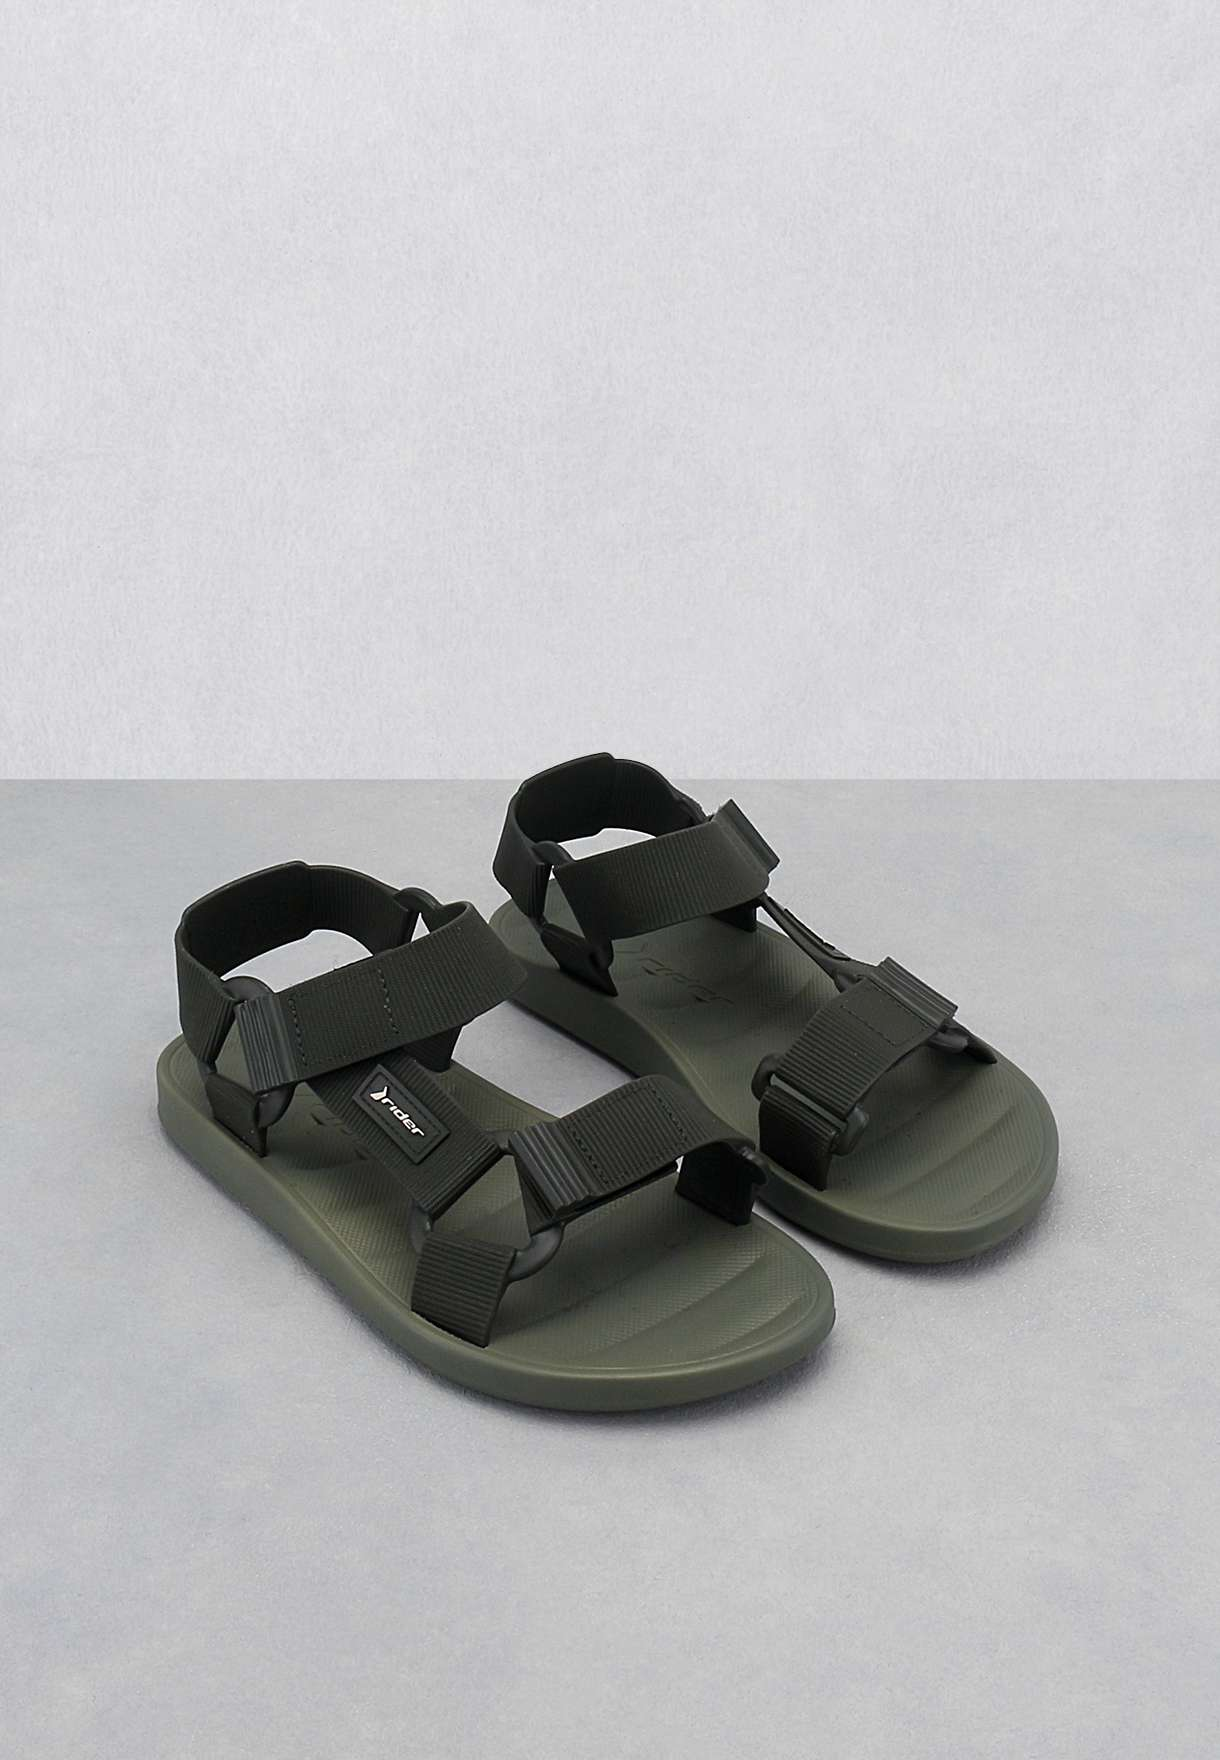 Free Style Sandals